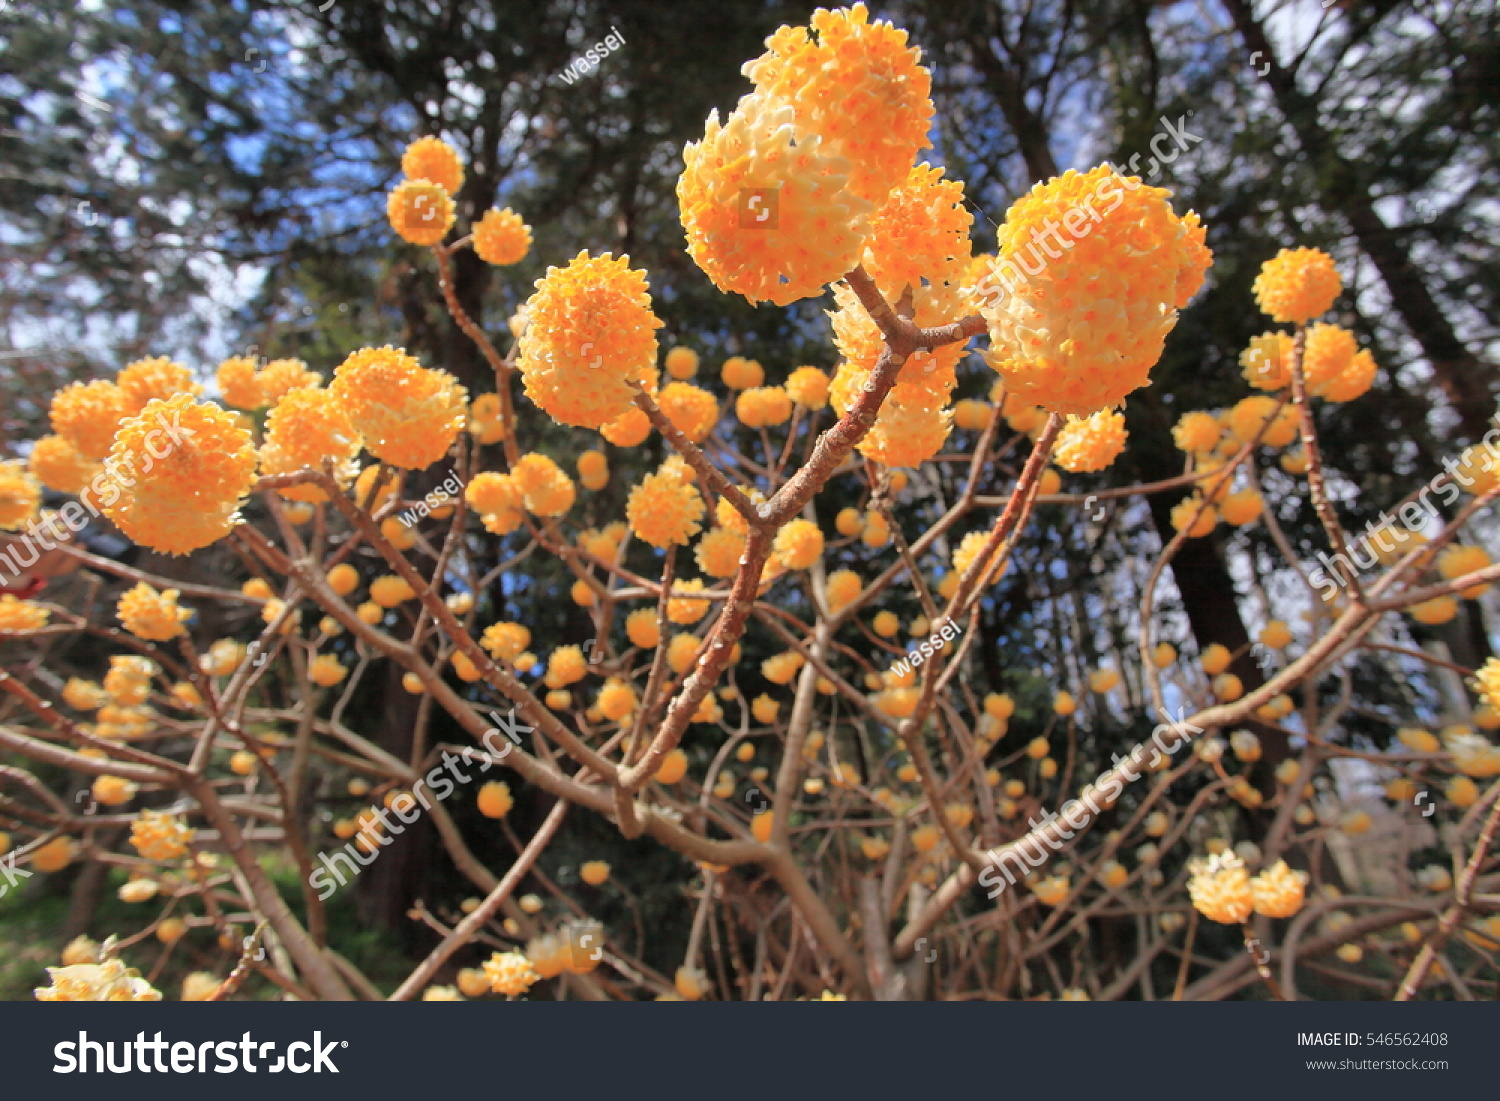 Yellow Ball Flowers Stock Photo Royalty Free 546562408 Shutterstock